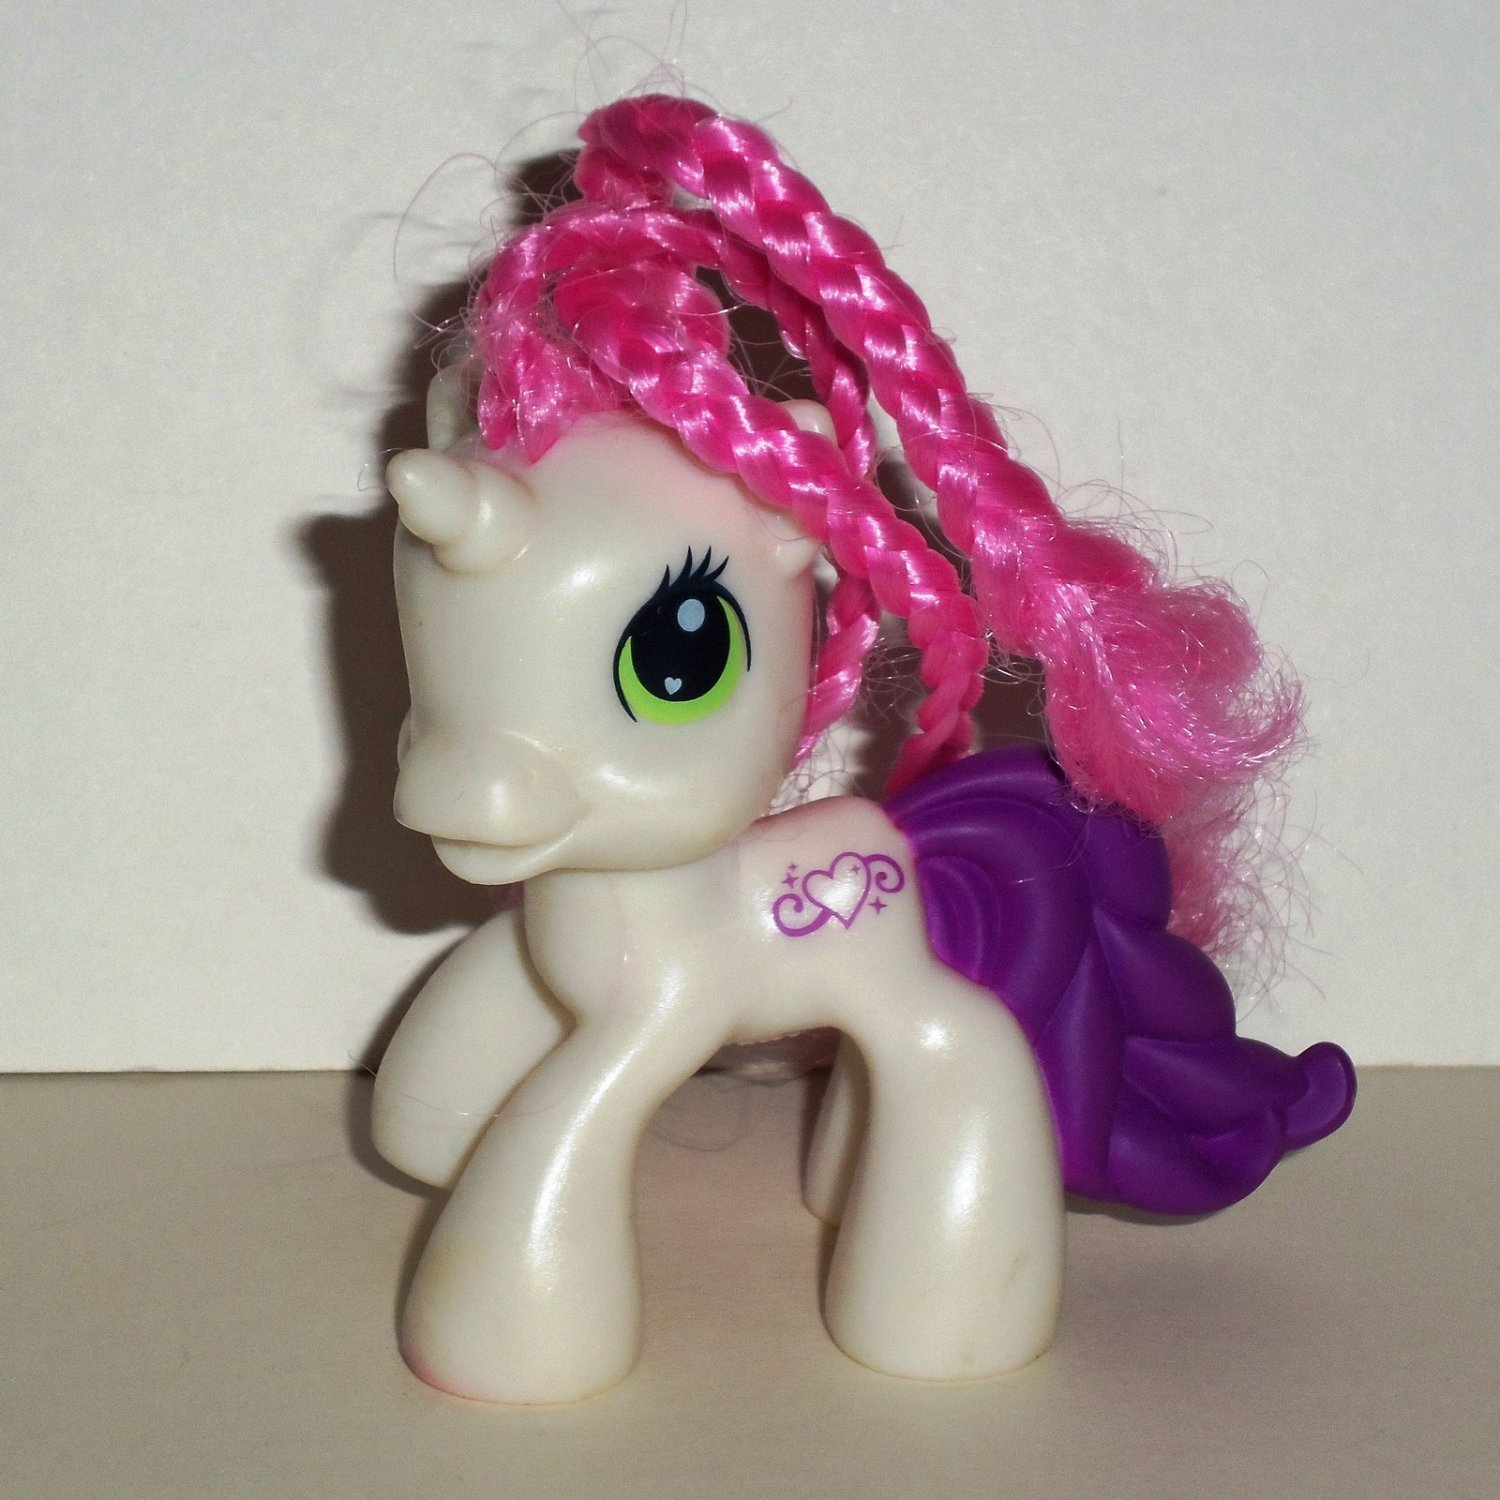 McDonald's 2009 My Little Pony Sweetie Belle Happy Meal Toy Hasbro Loose Used